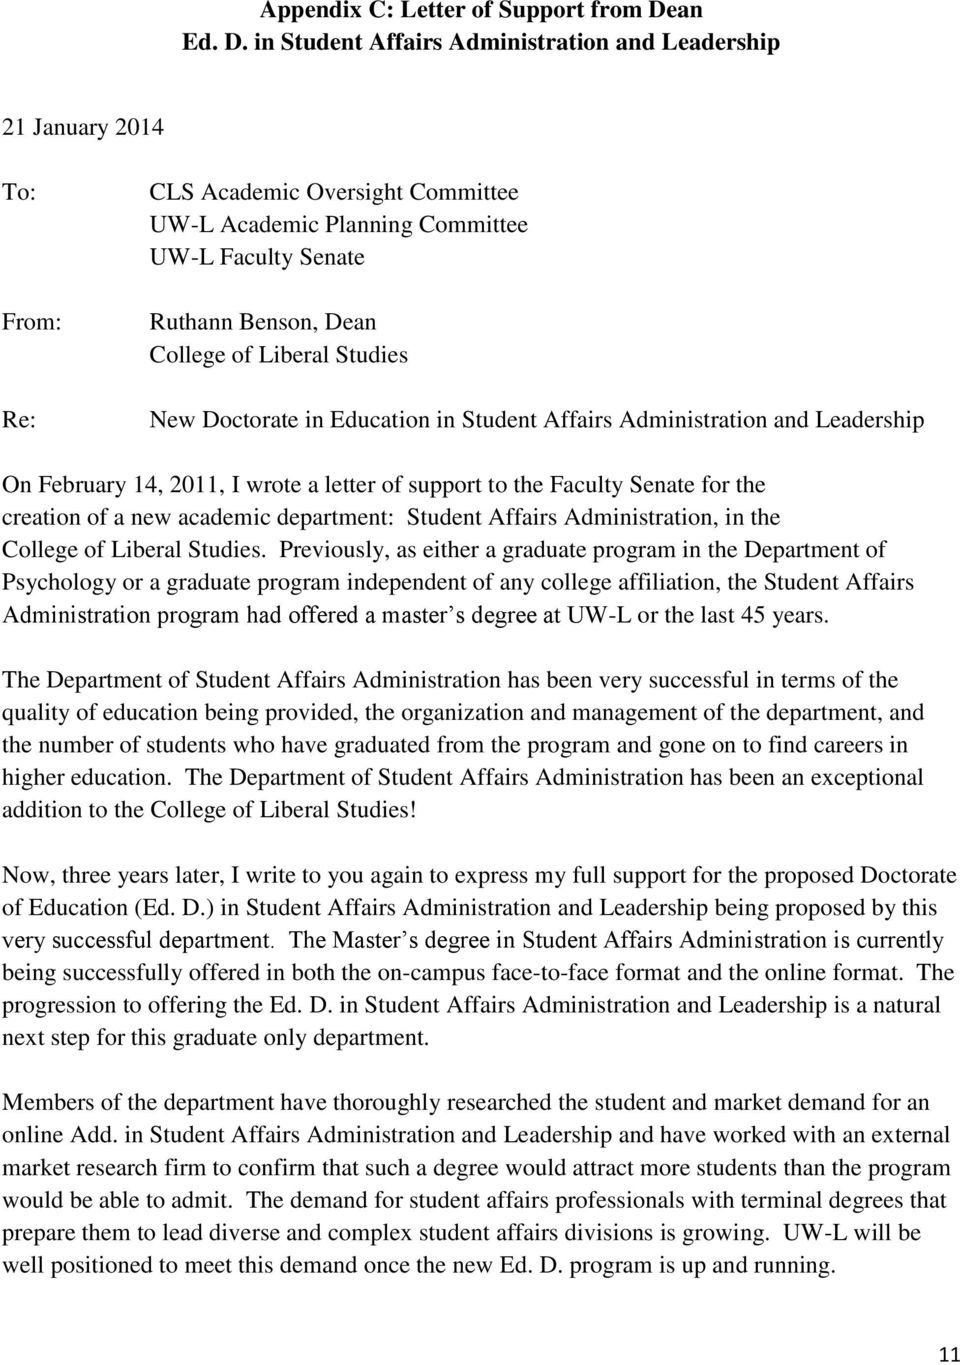 in Student Affairs Administration and Leadership 21 January 2014 To: From: Re: CLS Academic Oversight Committee UW-L Academic Planning Committee UW-L Faculty Senate Ruthann Benson, Dean College of